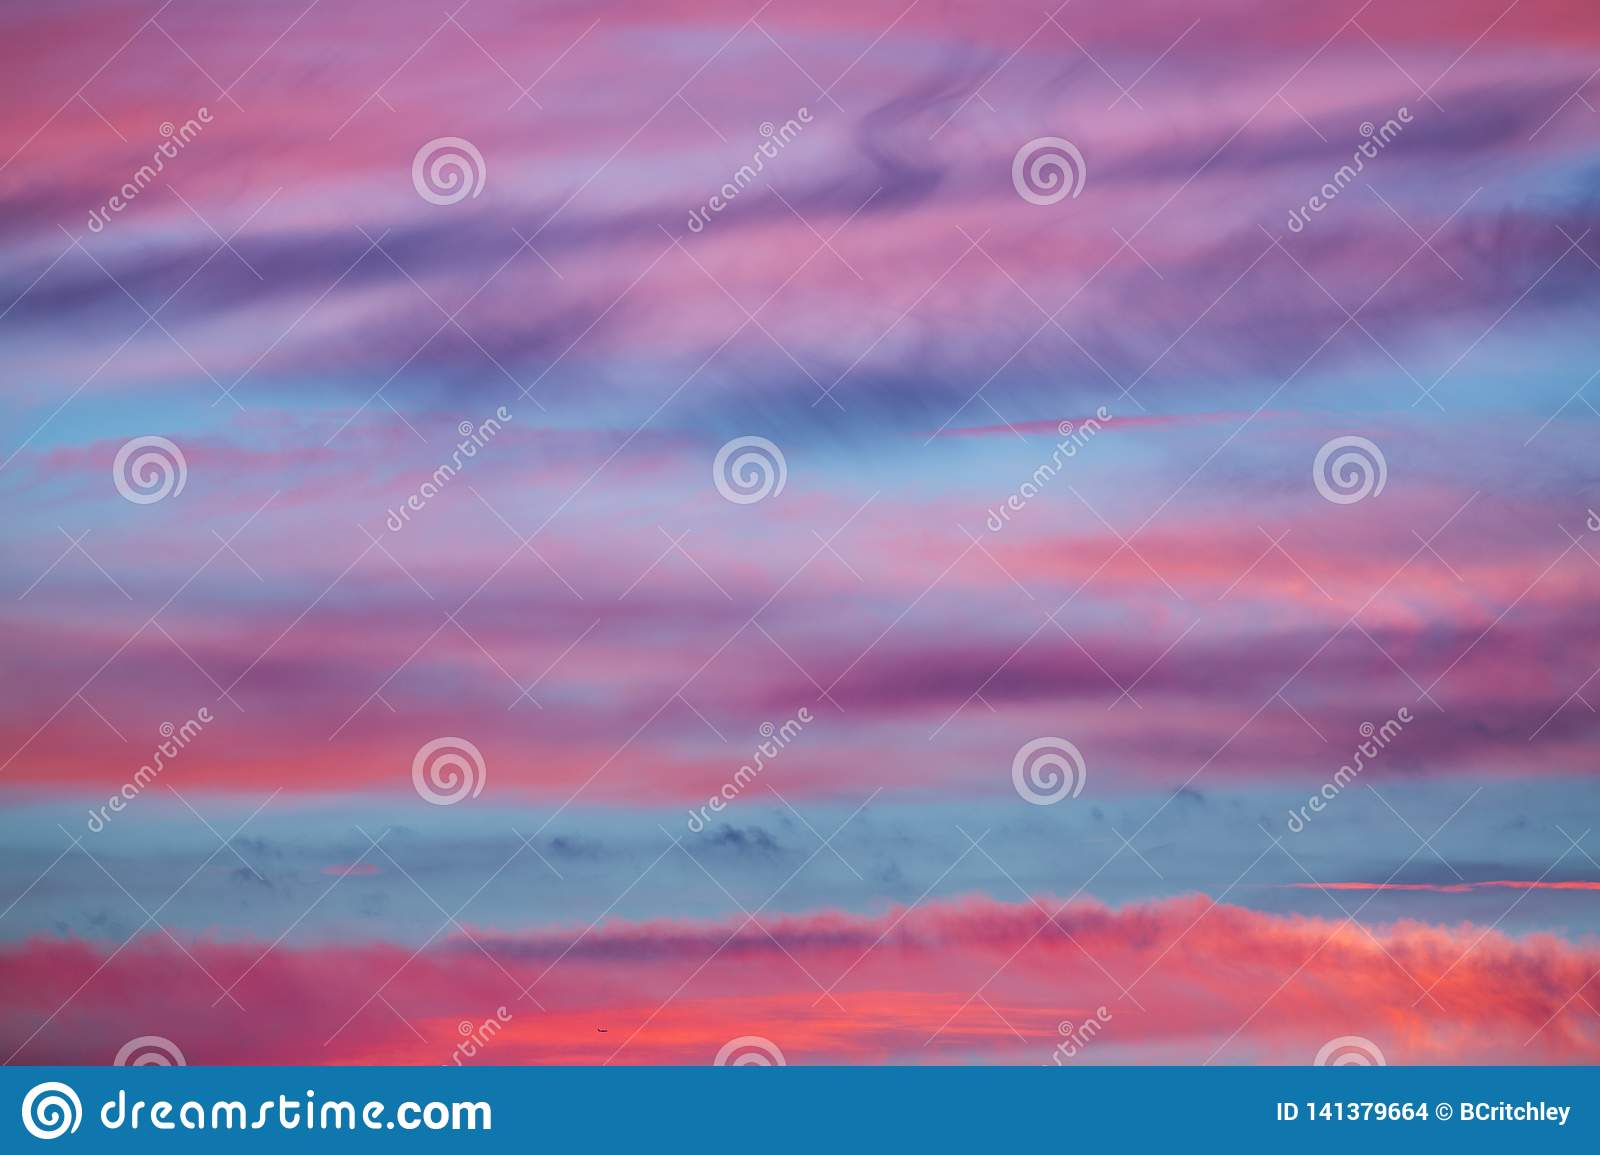 Amazing pink blue abstract sunset sky background